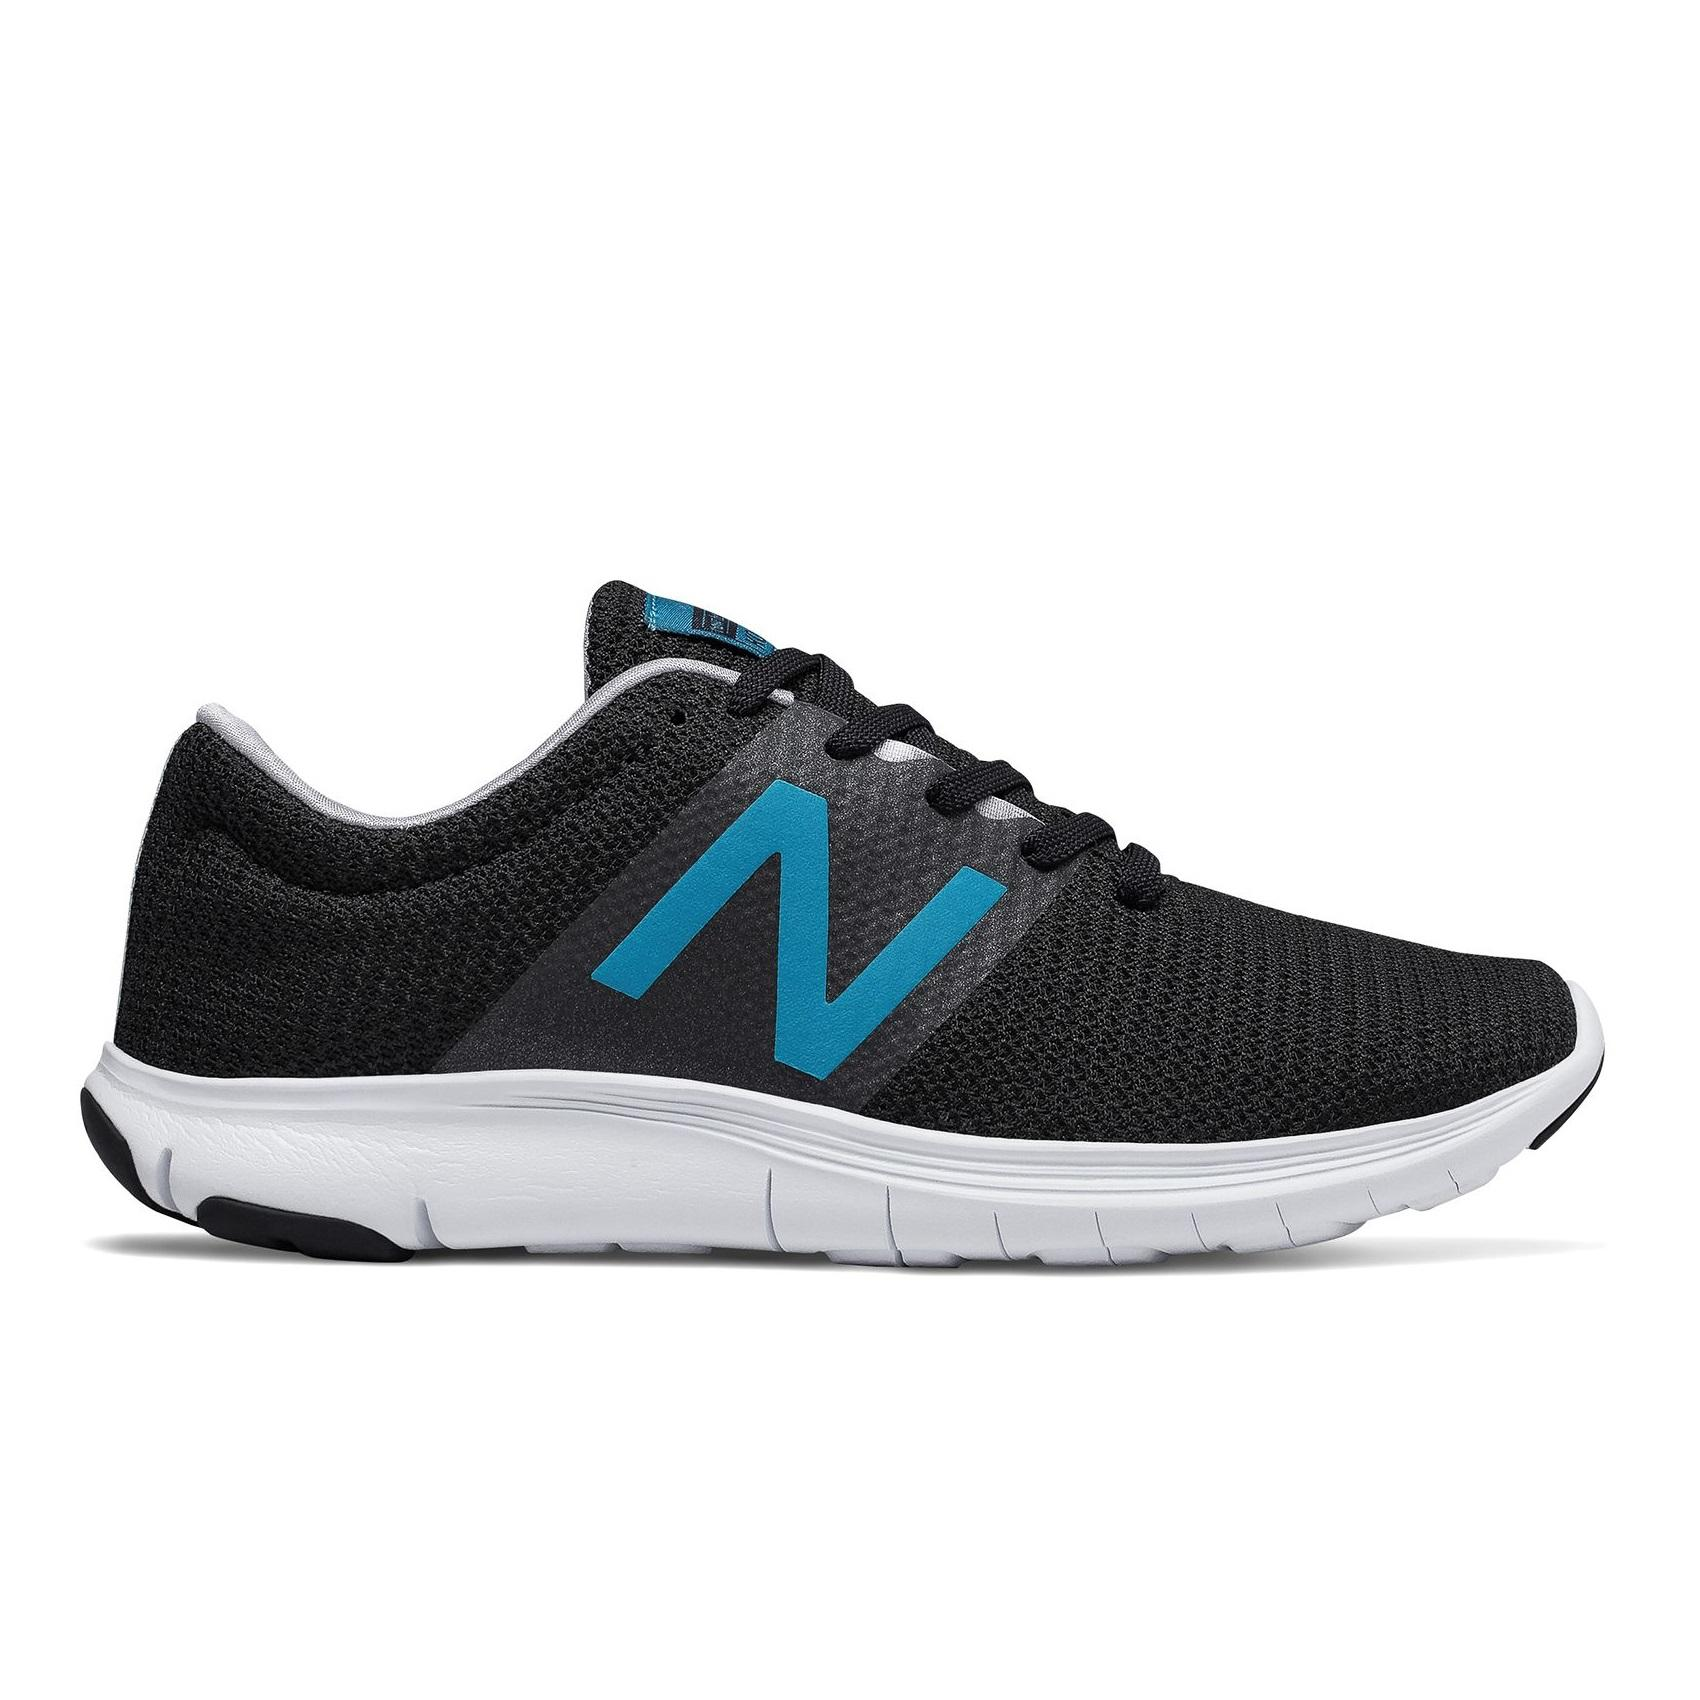 Sepatu New Balance WKOZECB1 Sports Running - Black 060ce6f8a5